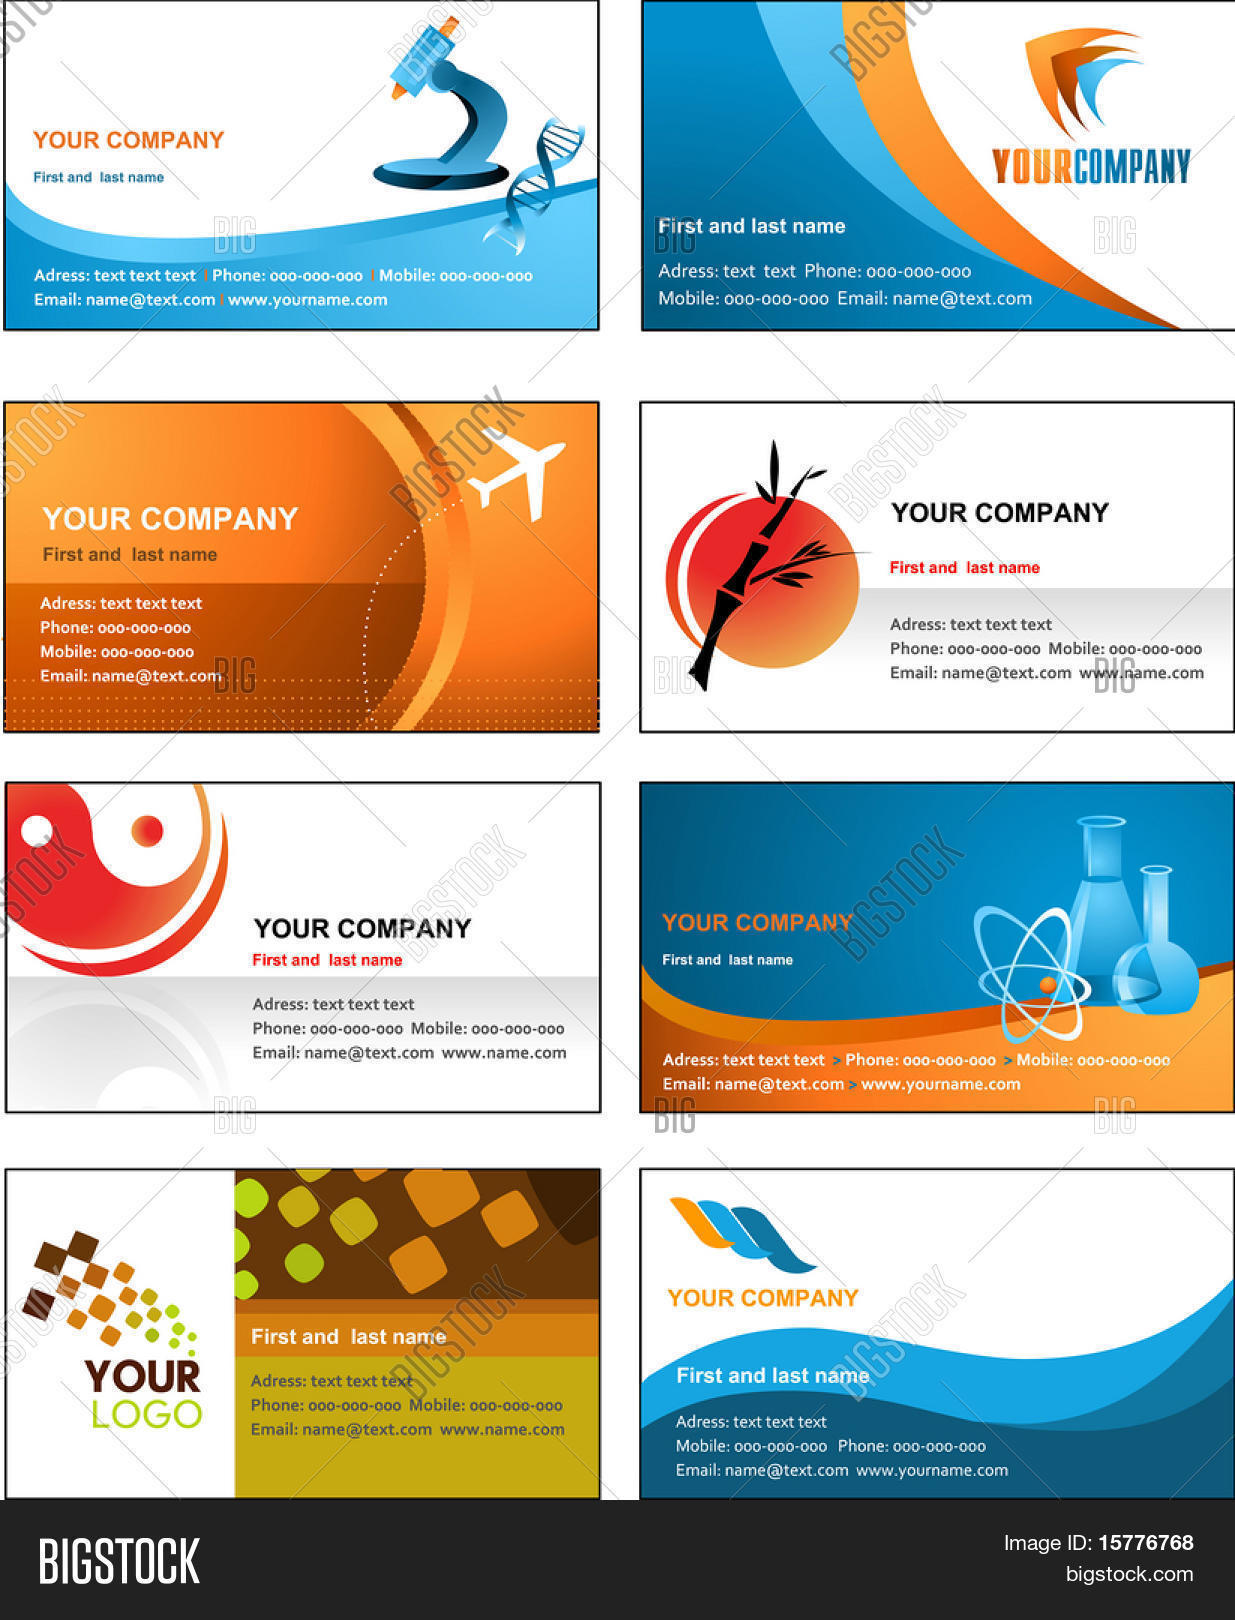 Business card vector photo free trial bigstock business card template design vector file cheaphphosting Gallery